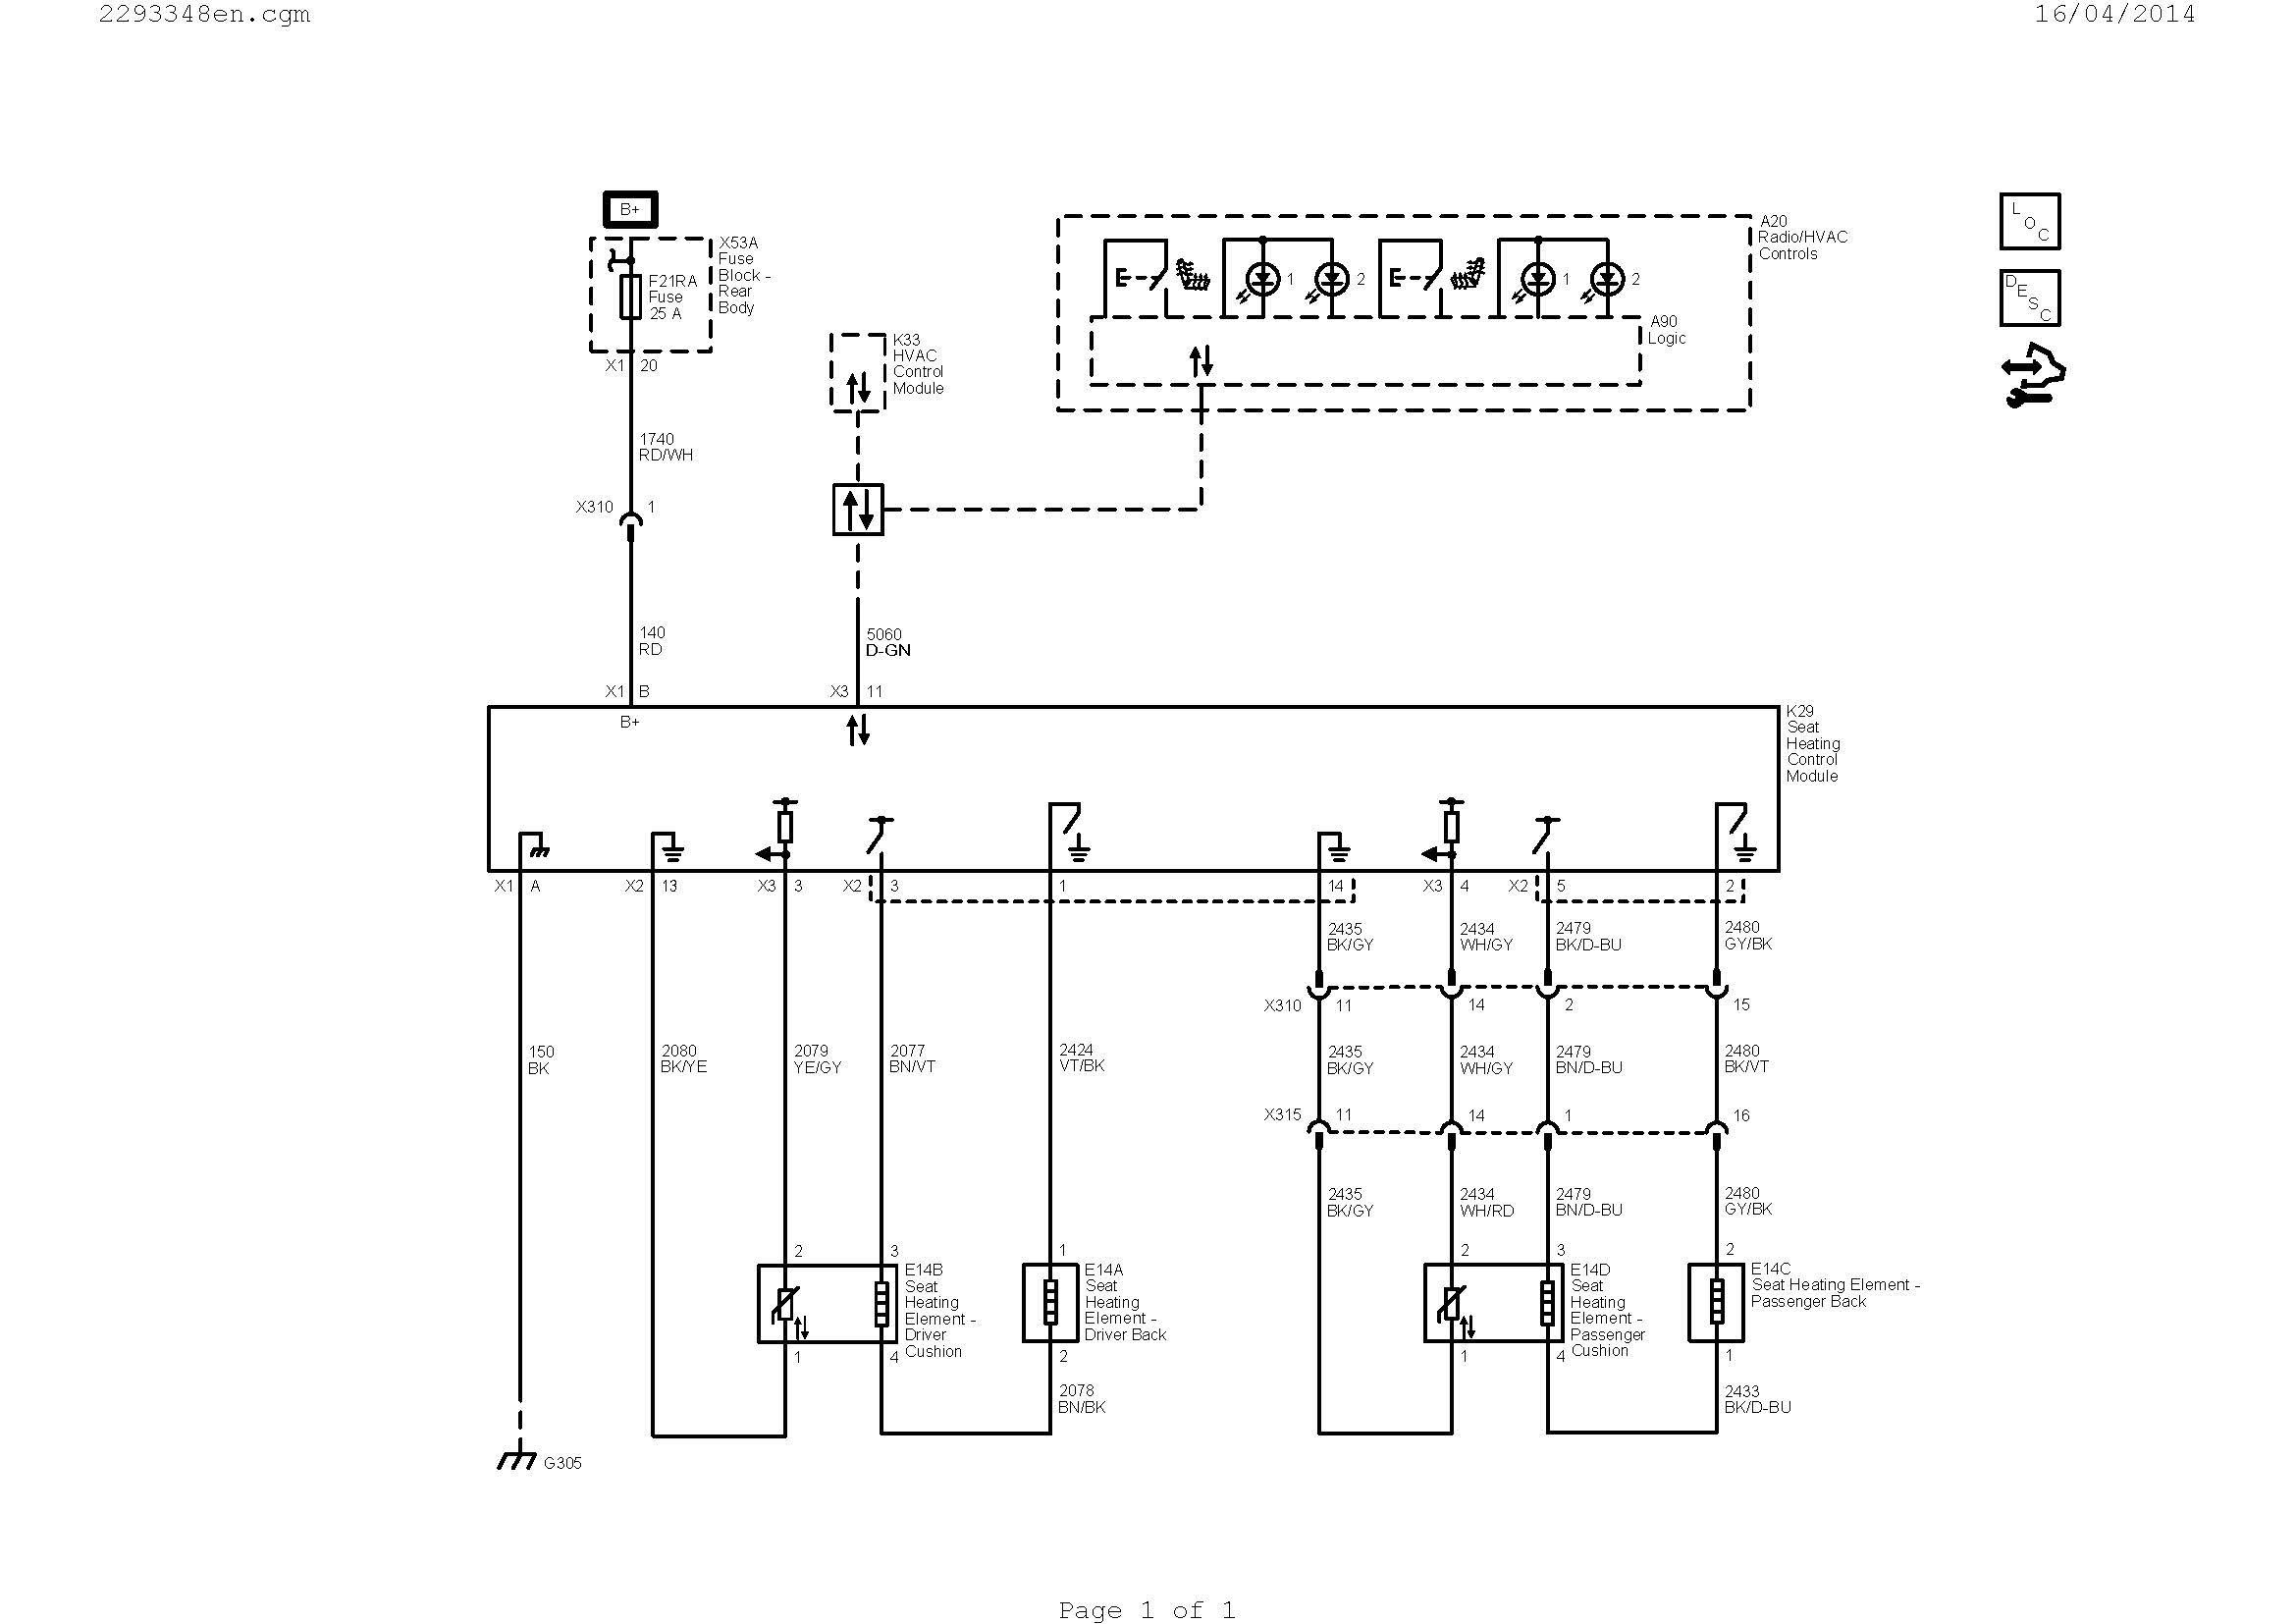 Wiring Diagram for Race Car Save Mechanical Engineering Diagrams Hvac Diagram Best Hvac Diagram 0d